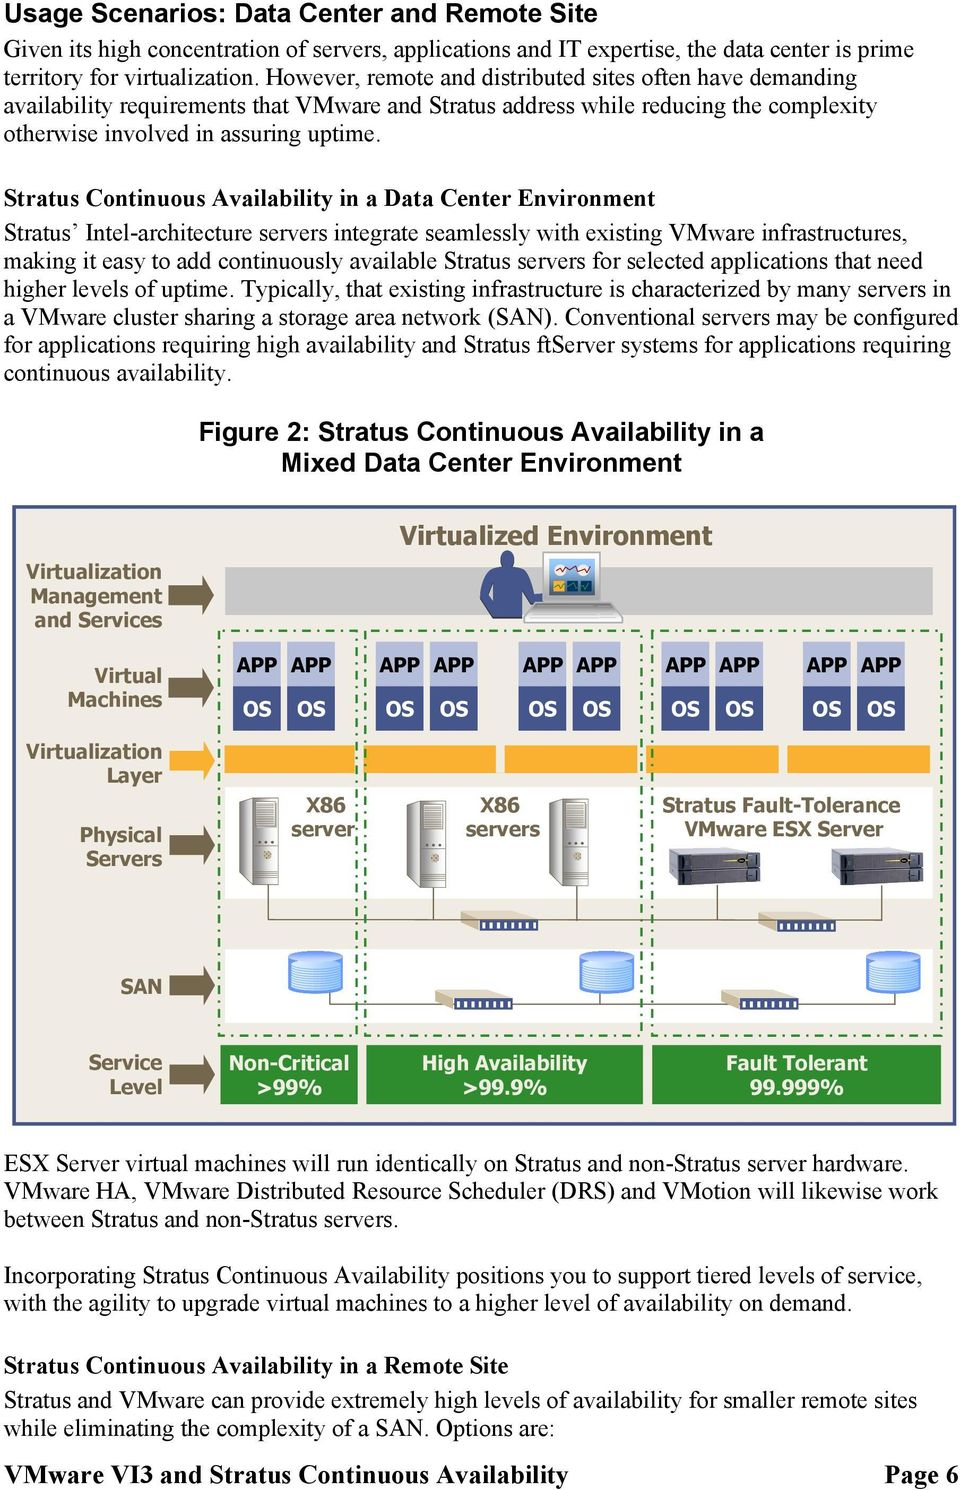 Stratus Continuous Availability in a Data Center Environment Stratus Intel-architecture servers integrate seamlessly with existing VMware infrastructures, making it easy to add continuously available